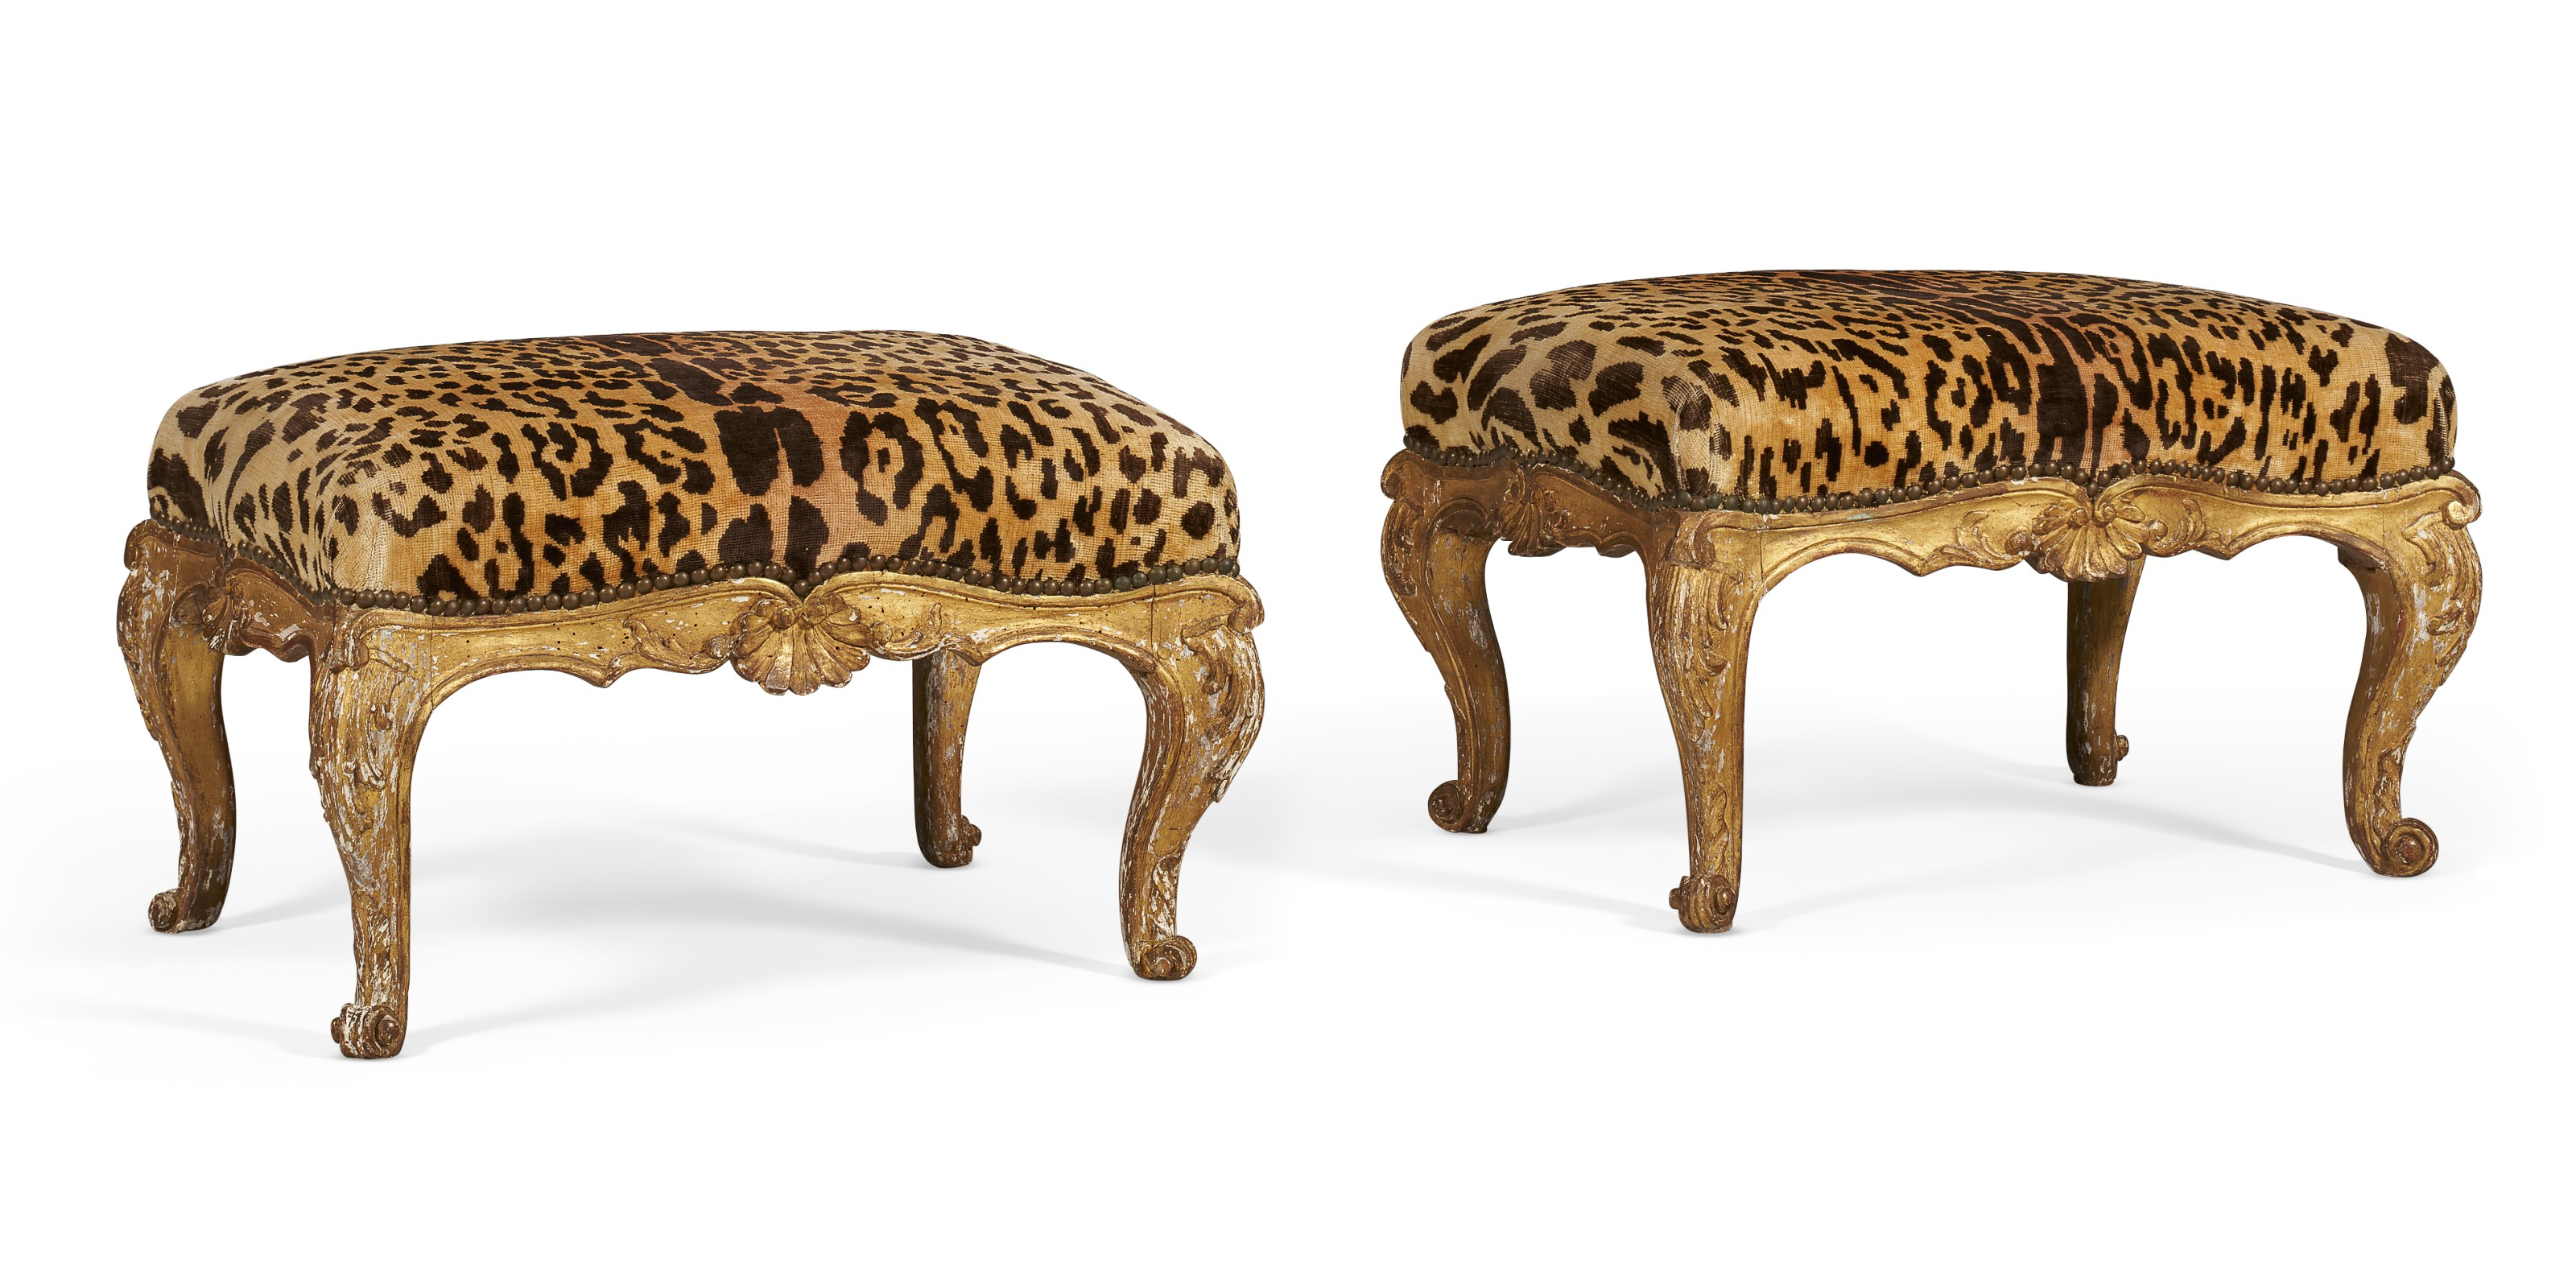 A pair of north Italian giltwood tabourets, c. 1750-55. Each of rectangular form and covered in leopard print upholstery, with scalloped foliate rail centered with shells, on cabriole legs terminating in scrolled feet. 12  in (30.5  cm) high, 21  in (53.5  cm) wide, 16¼  in (41.5  cm) deep. Estimate $3,000-5,000. Offered in The Collector English & European Furniture, Ceramics, Silver